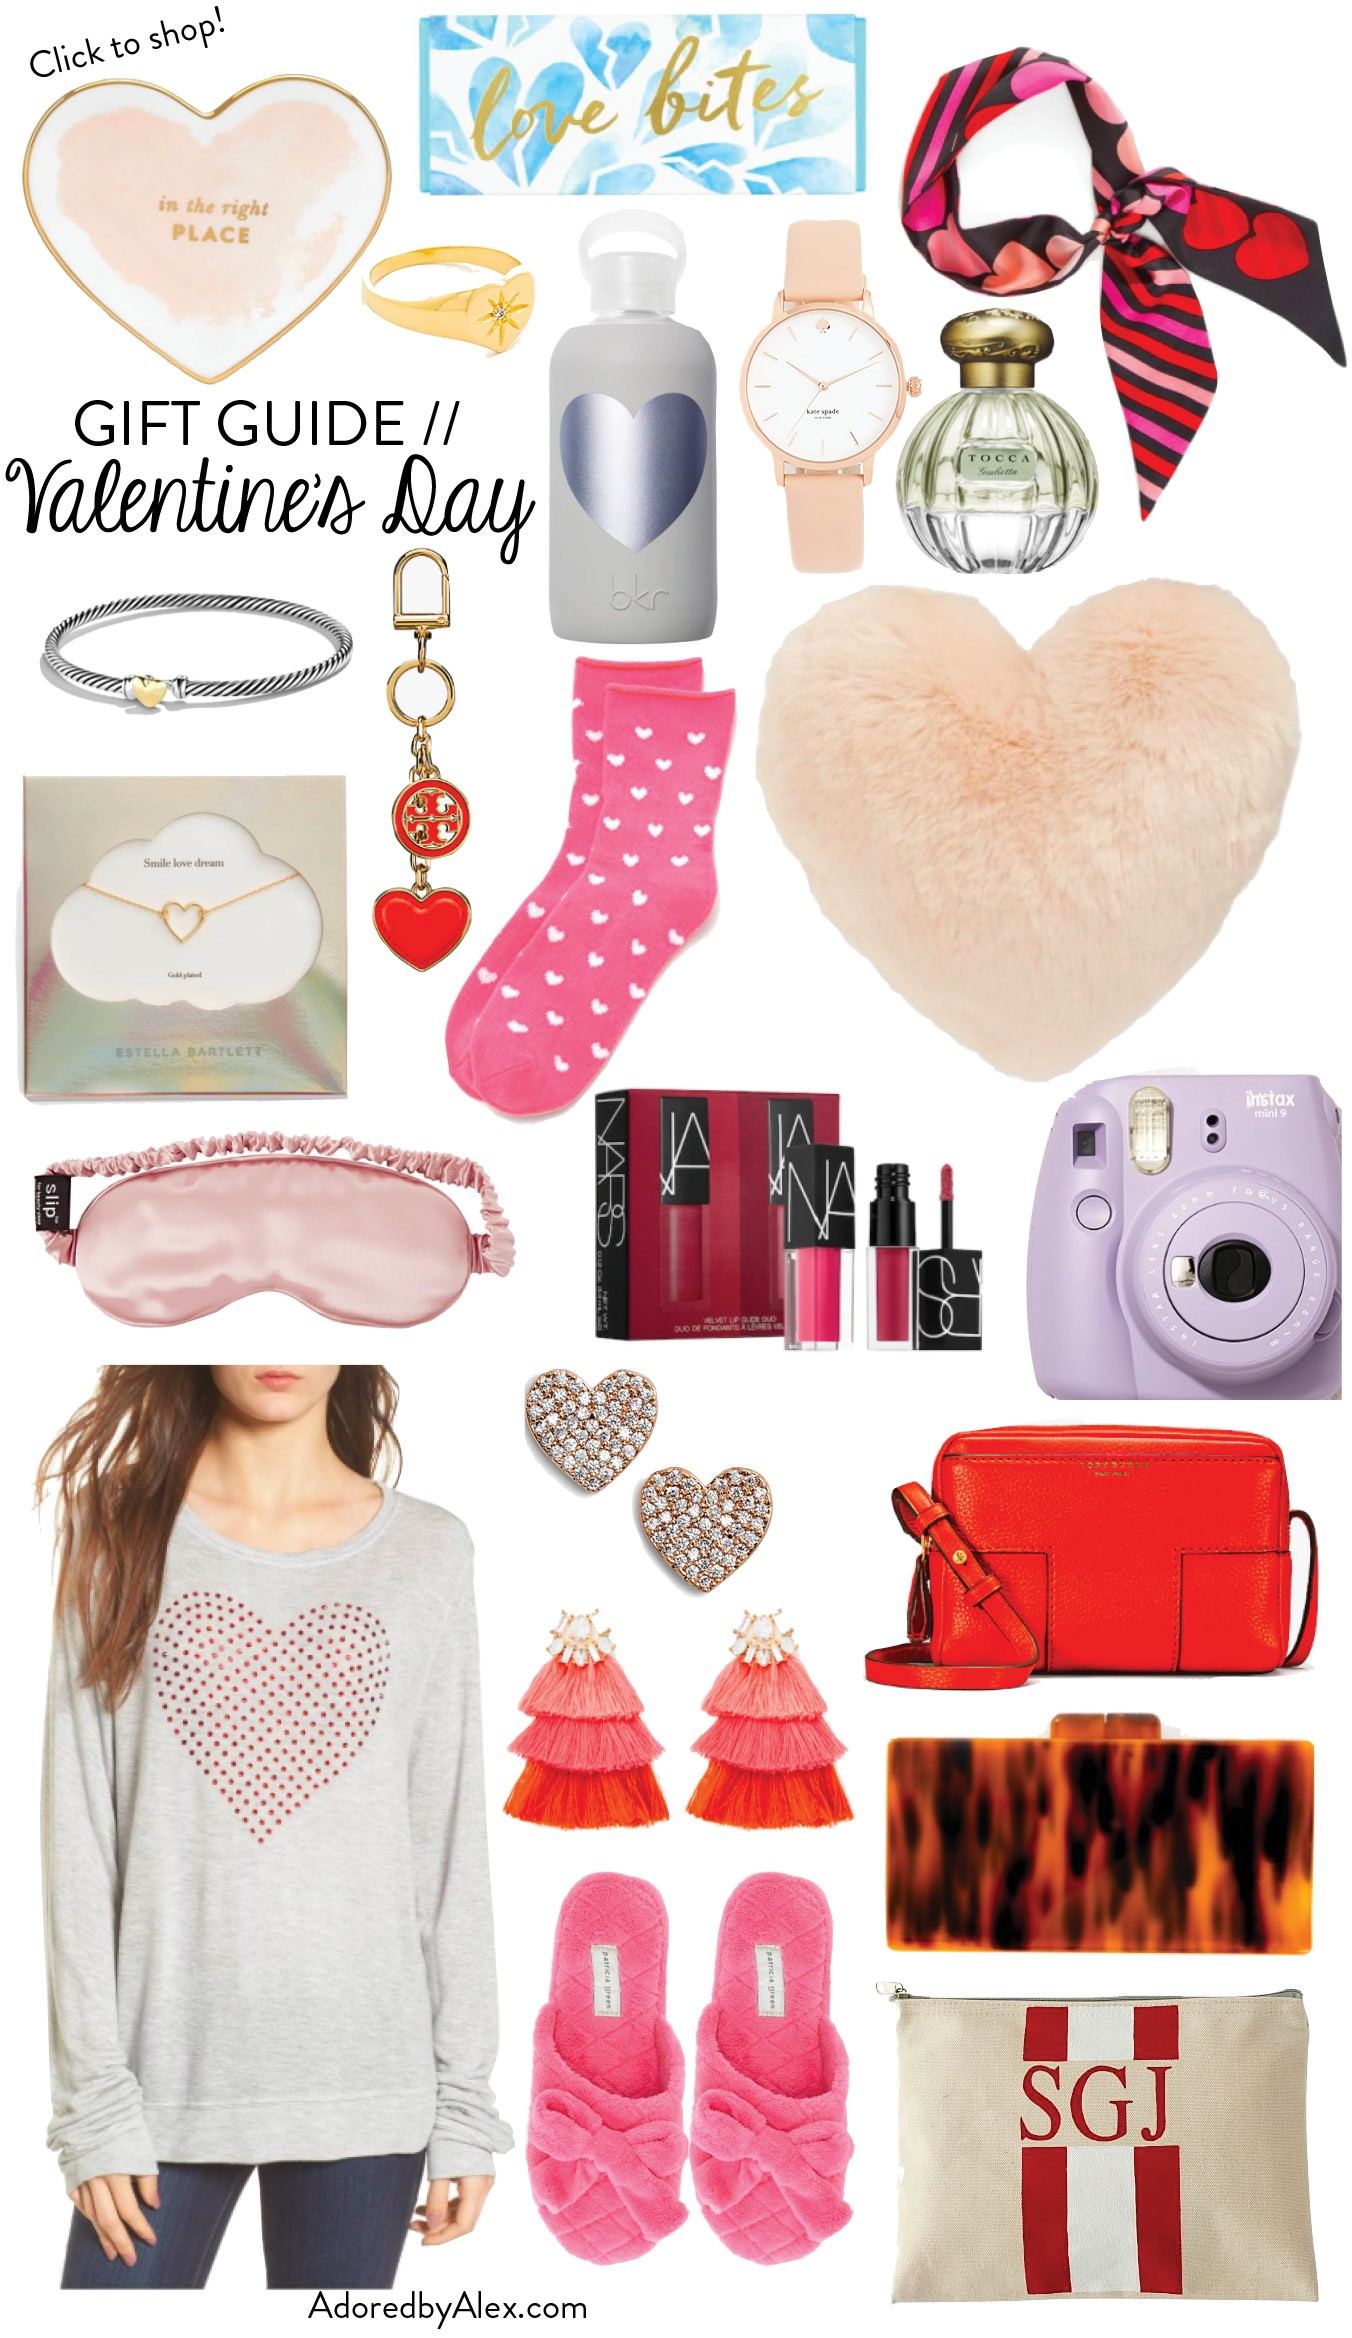 Let S Shop Valentine S Day Gift Ideas For Her Adored By Alex